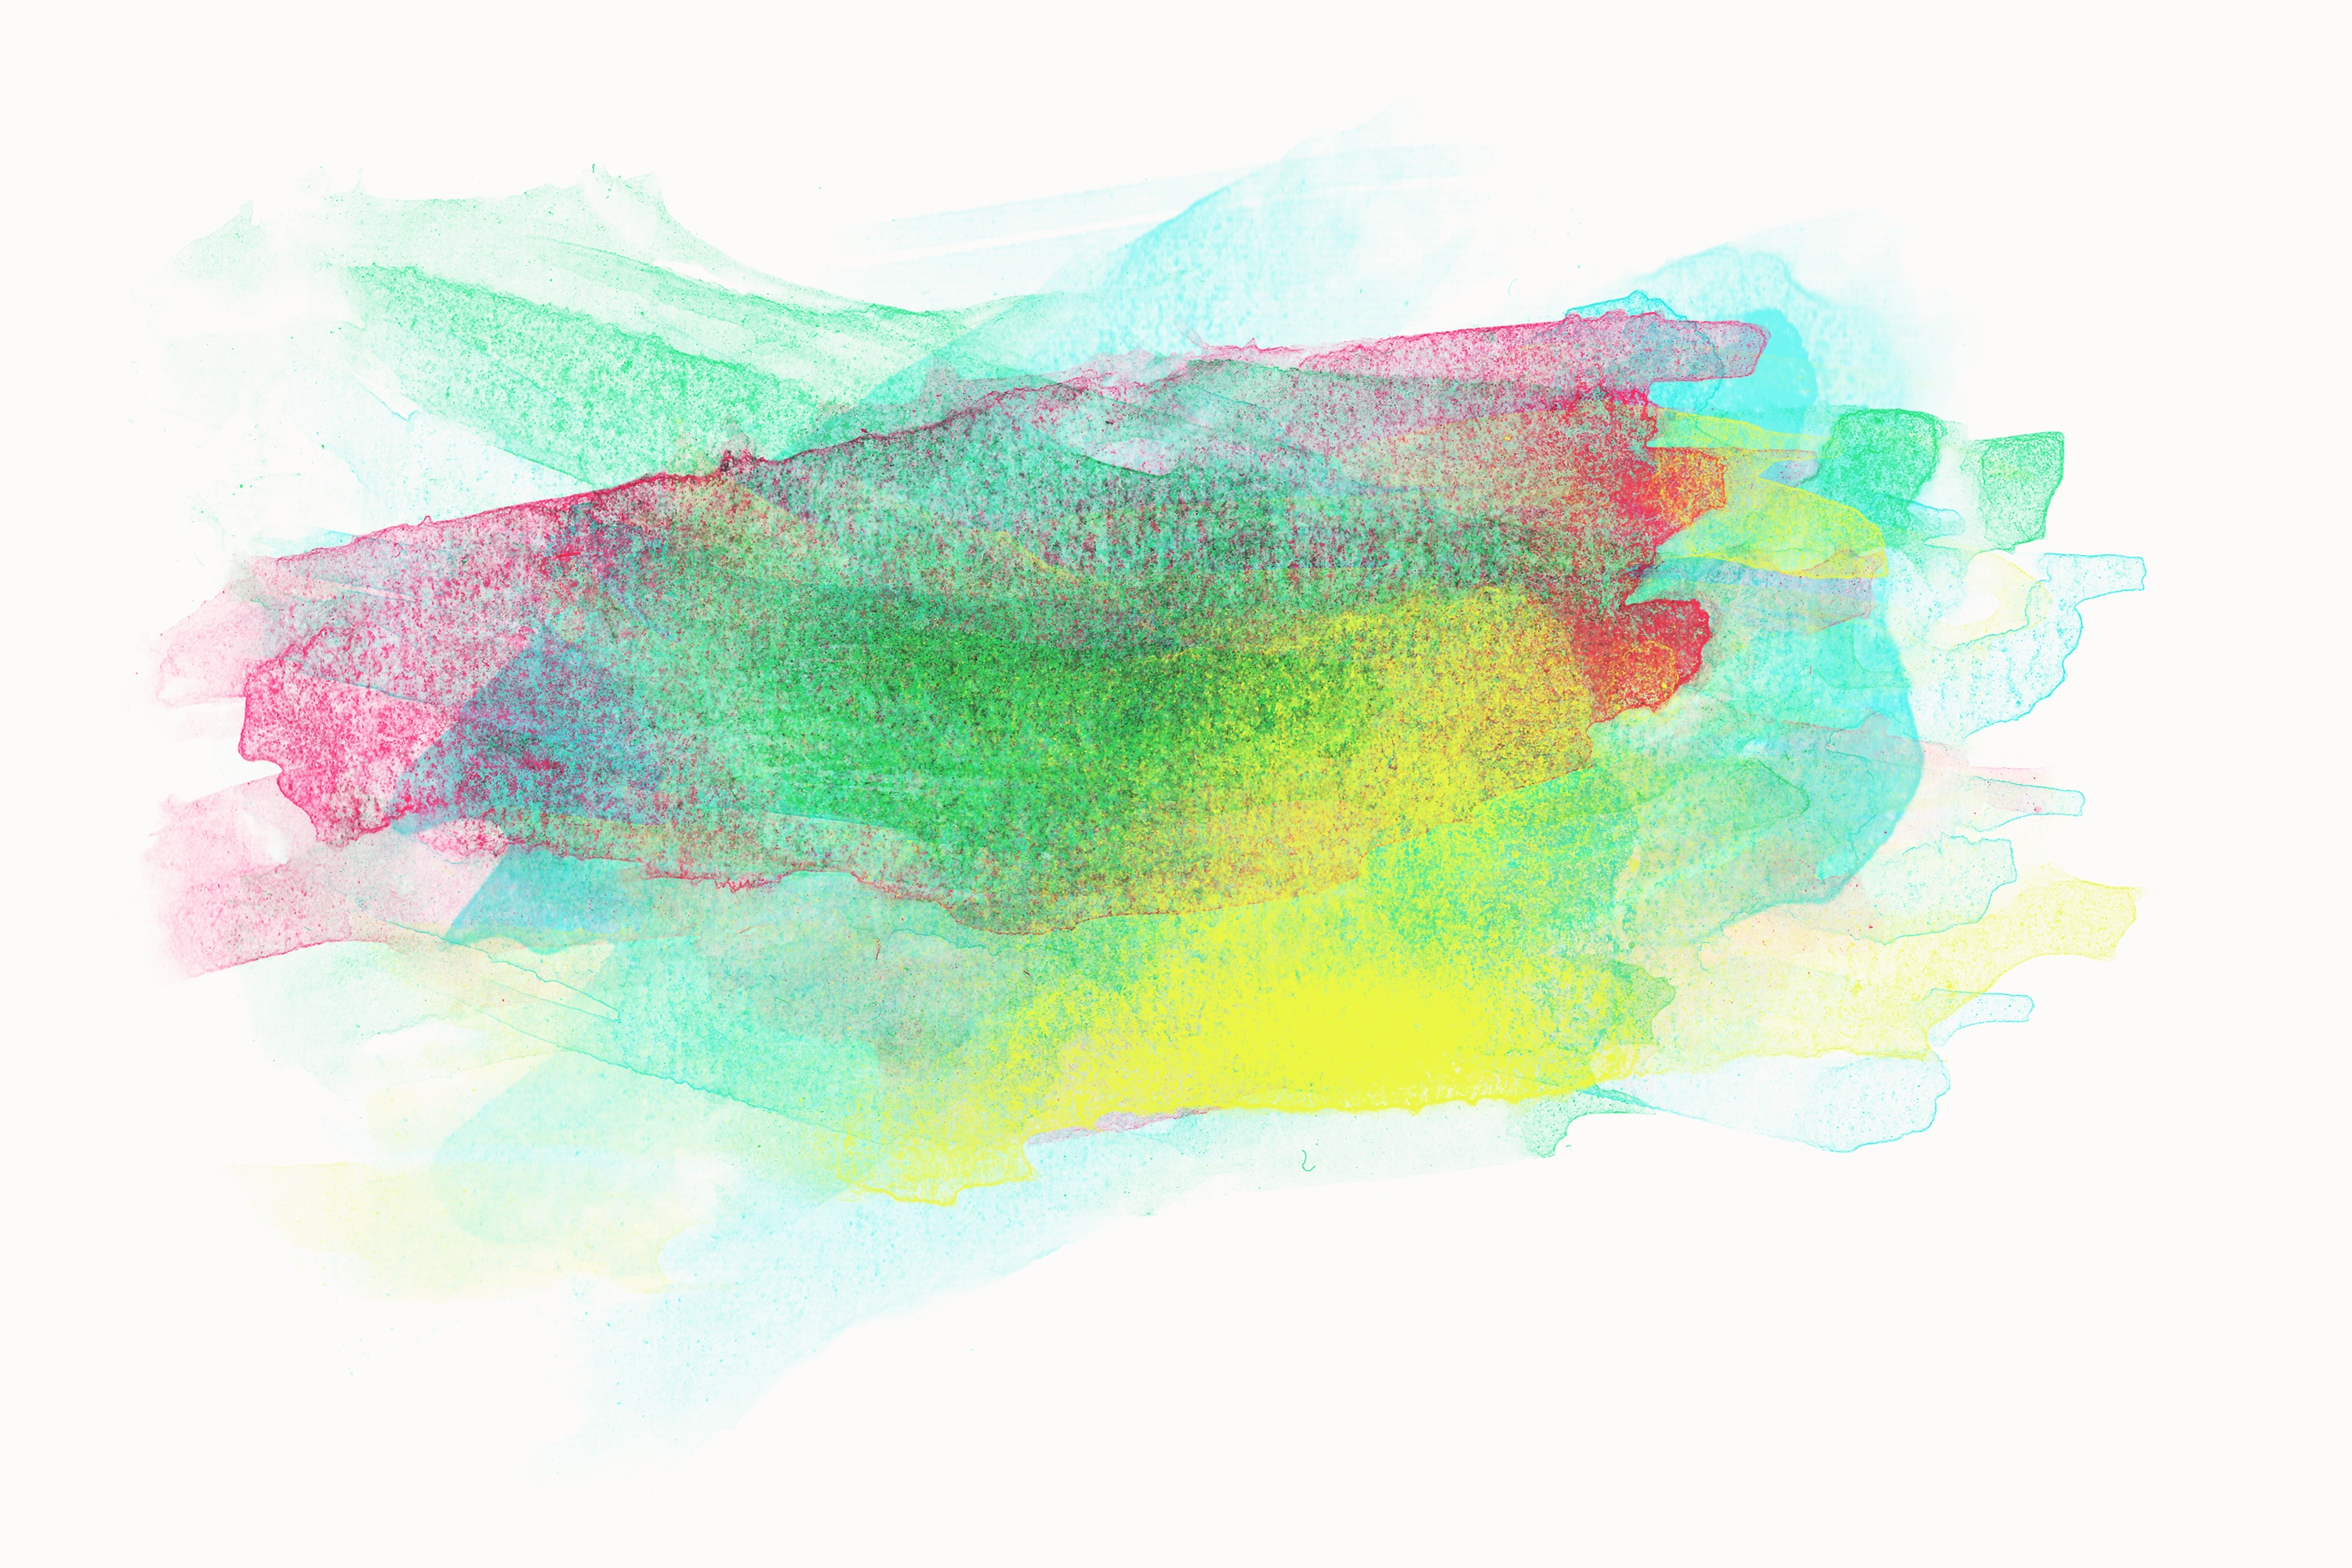 Watercolor wallpapers for iPhone, iPad, or desktop